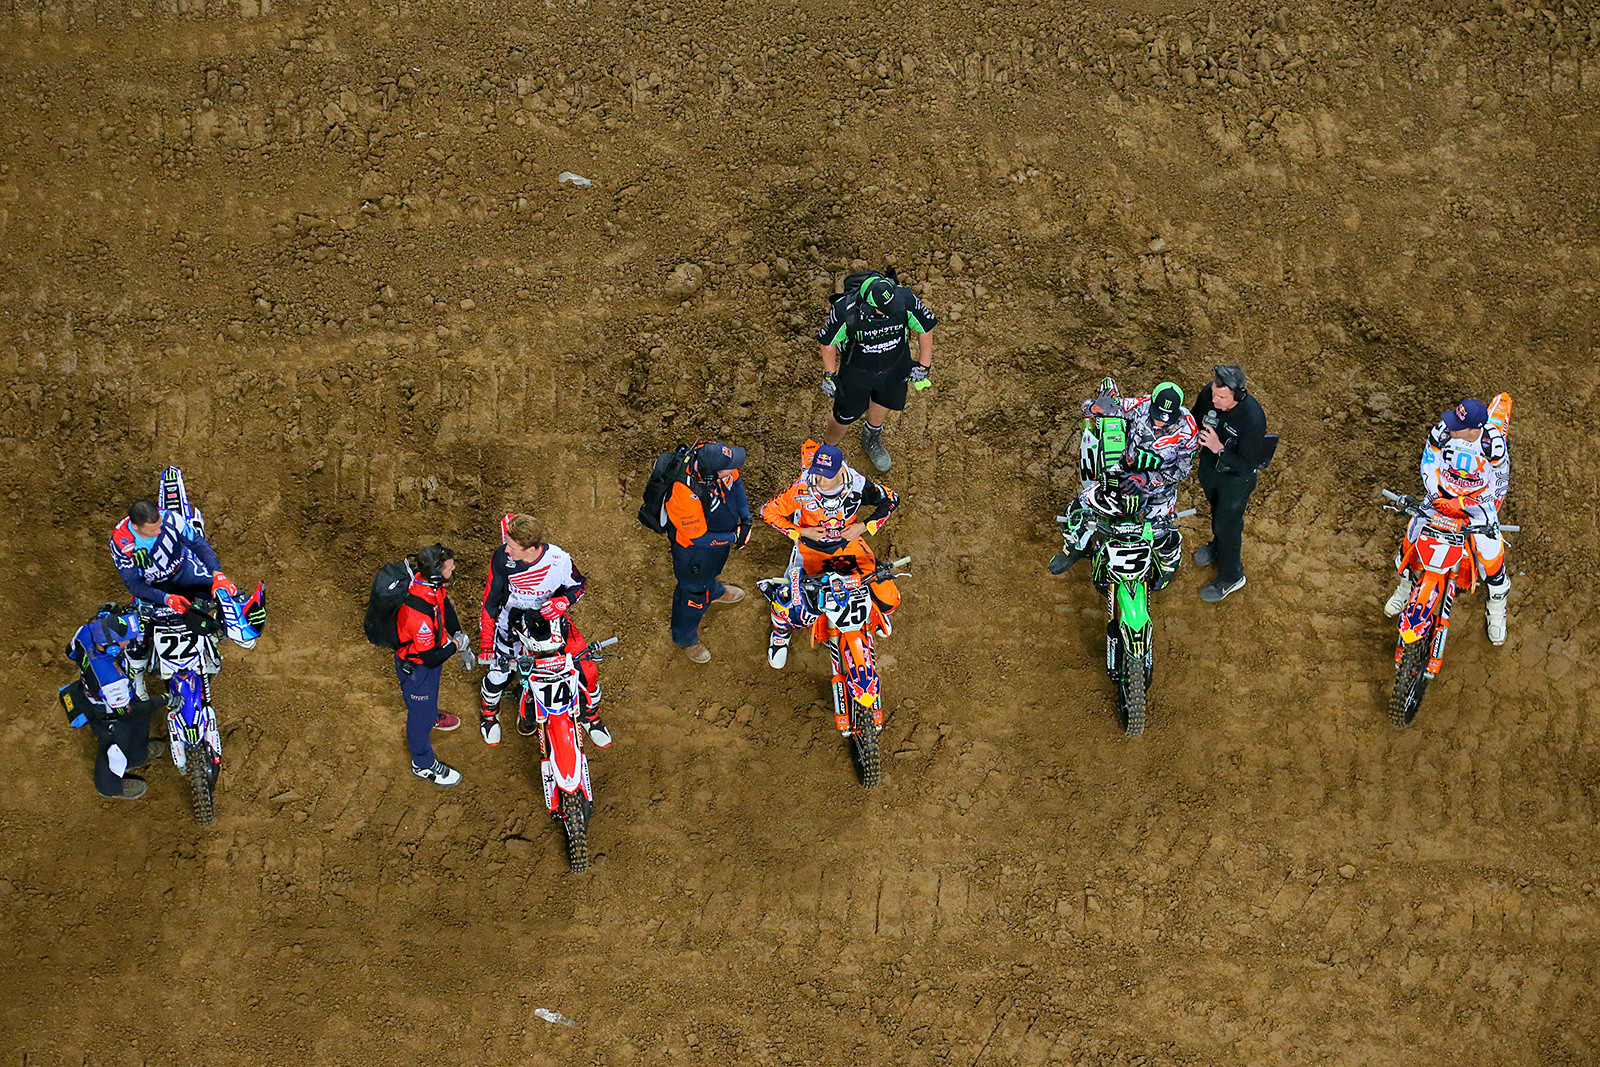 Photo Blast from St. Louis, and opening ceremonies - Photo Blast: St. Louis - Motocross Pictures - Vital MX